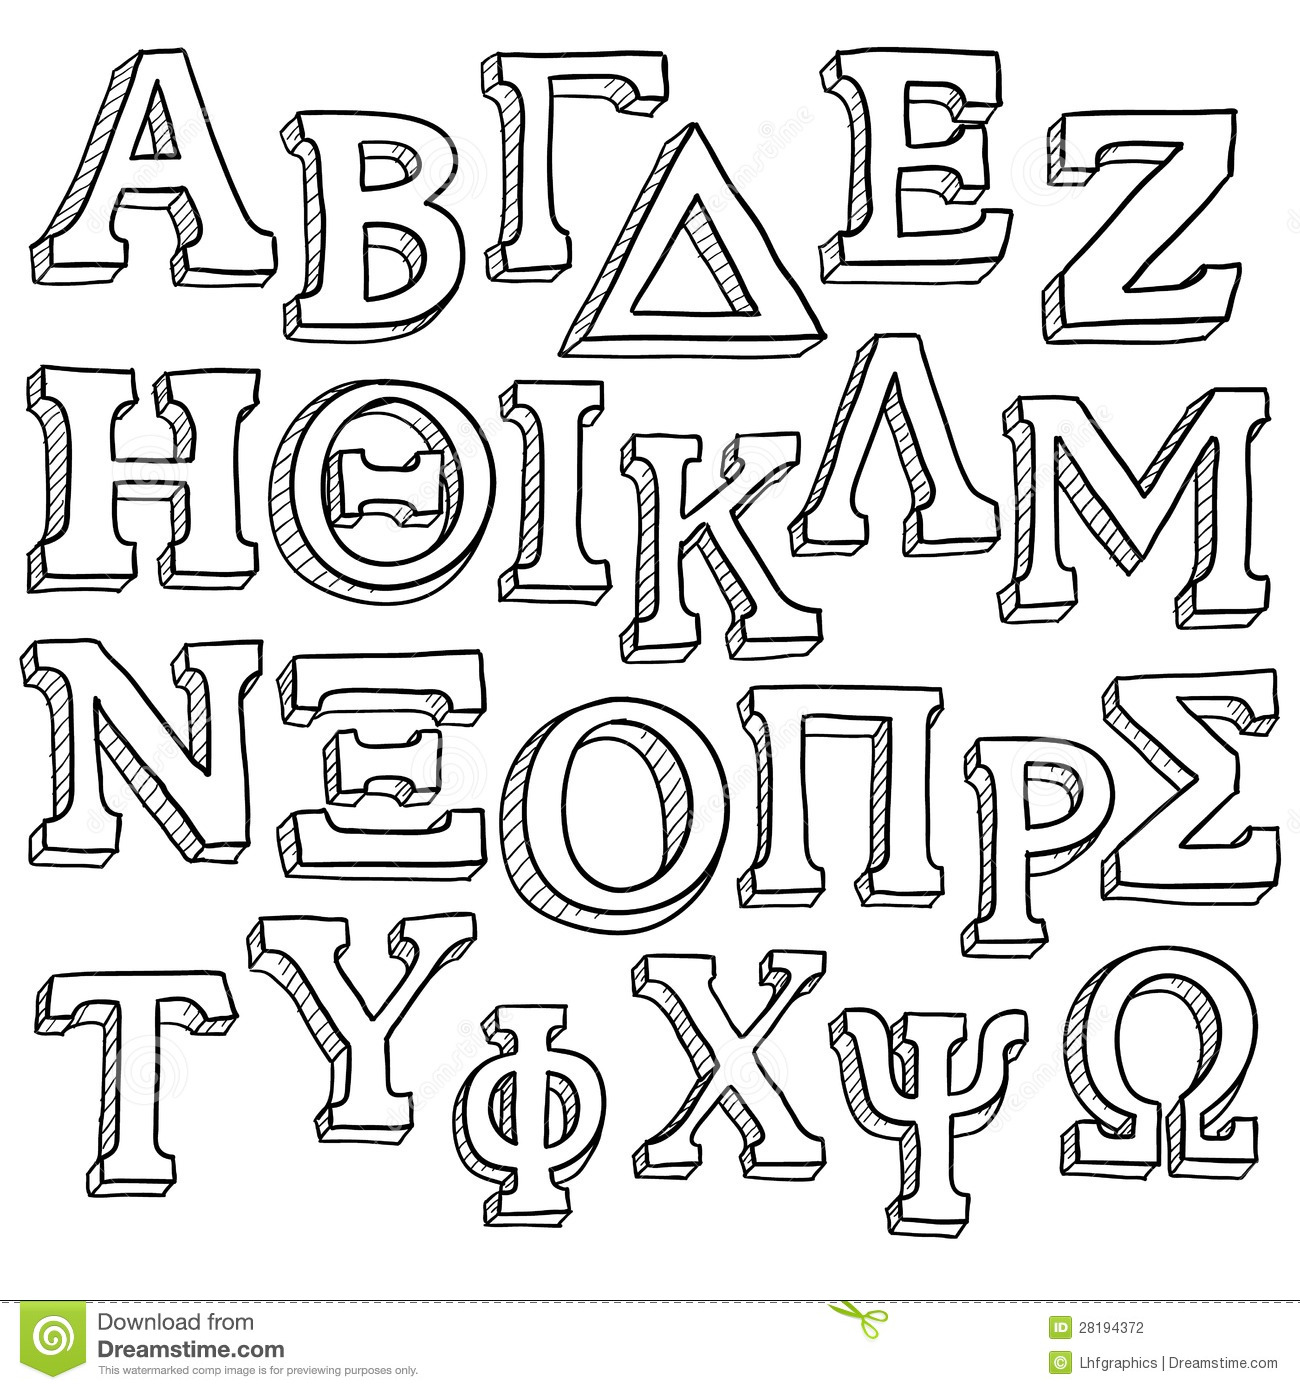 Greek alphabet clipart image library Greek Alphabet Sketch Stock Photography - Image: 28194372 image library